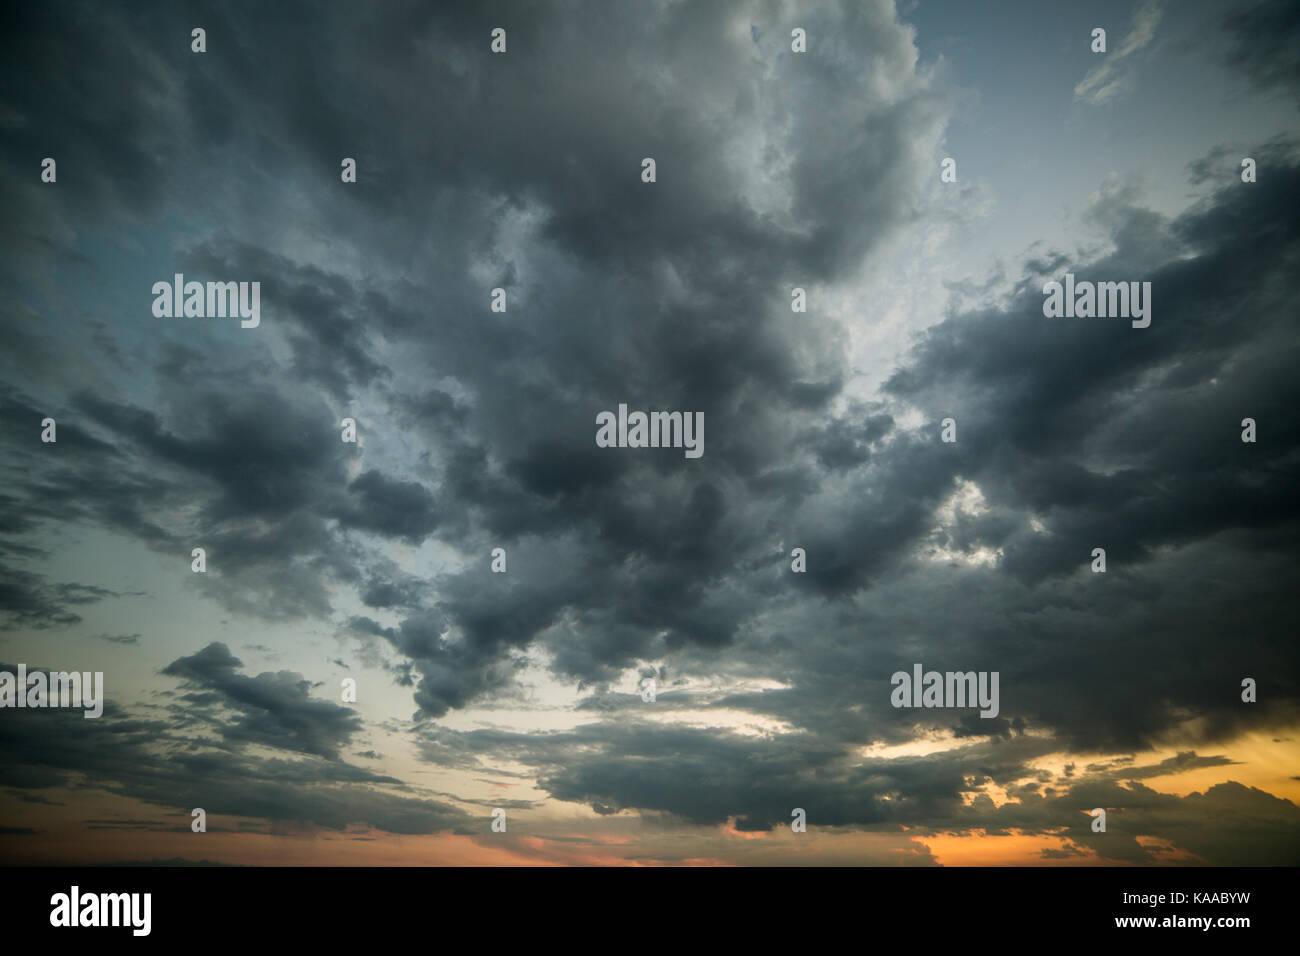 Dramatic cloudy sky background overlay at sunset stock photo dramatic cloudy sky background overlay at sunset thecheapjerseys Gallery